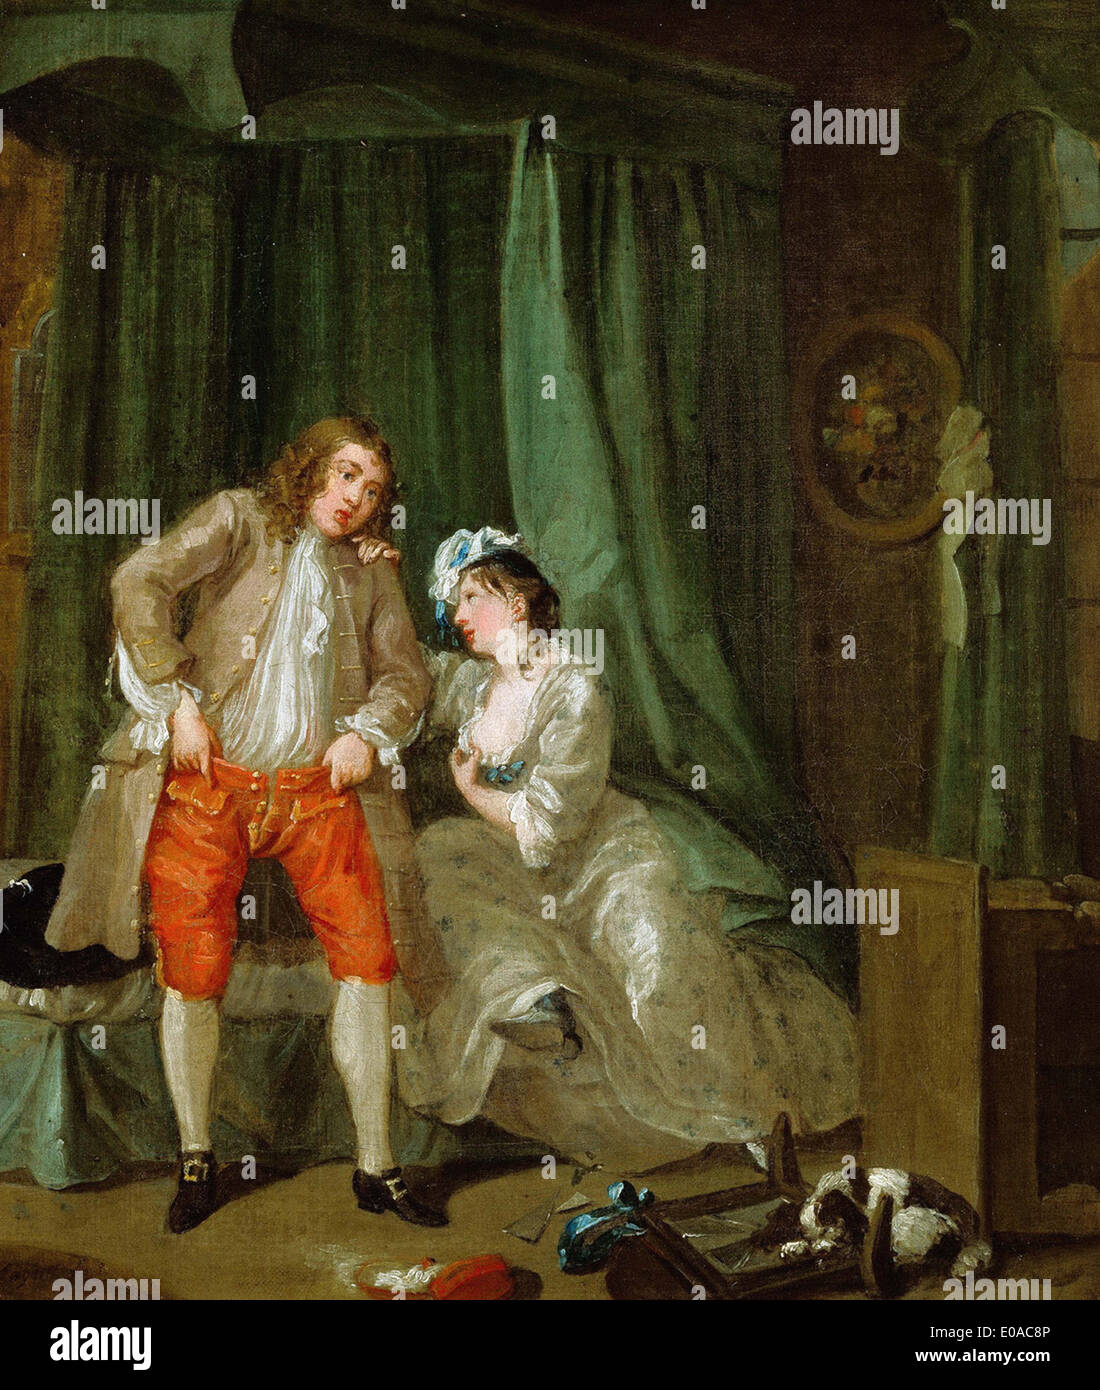 William Hogarth After - Stock Image